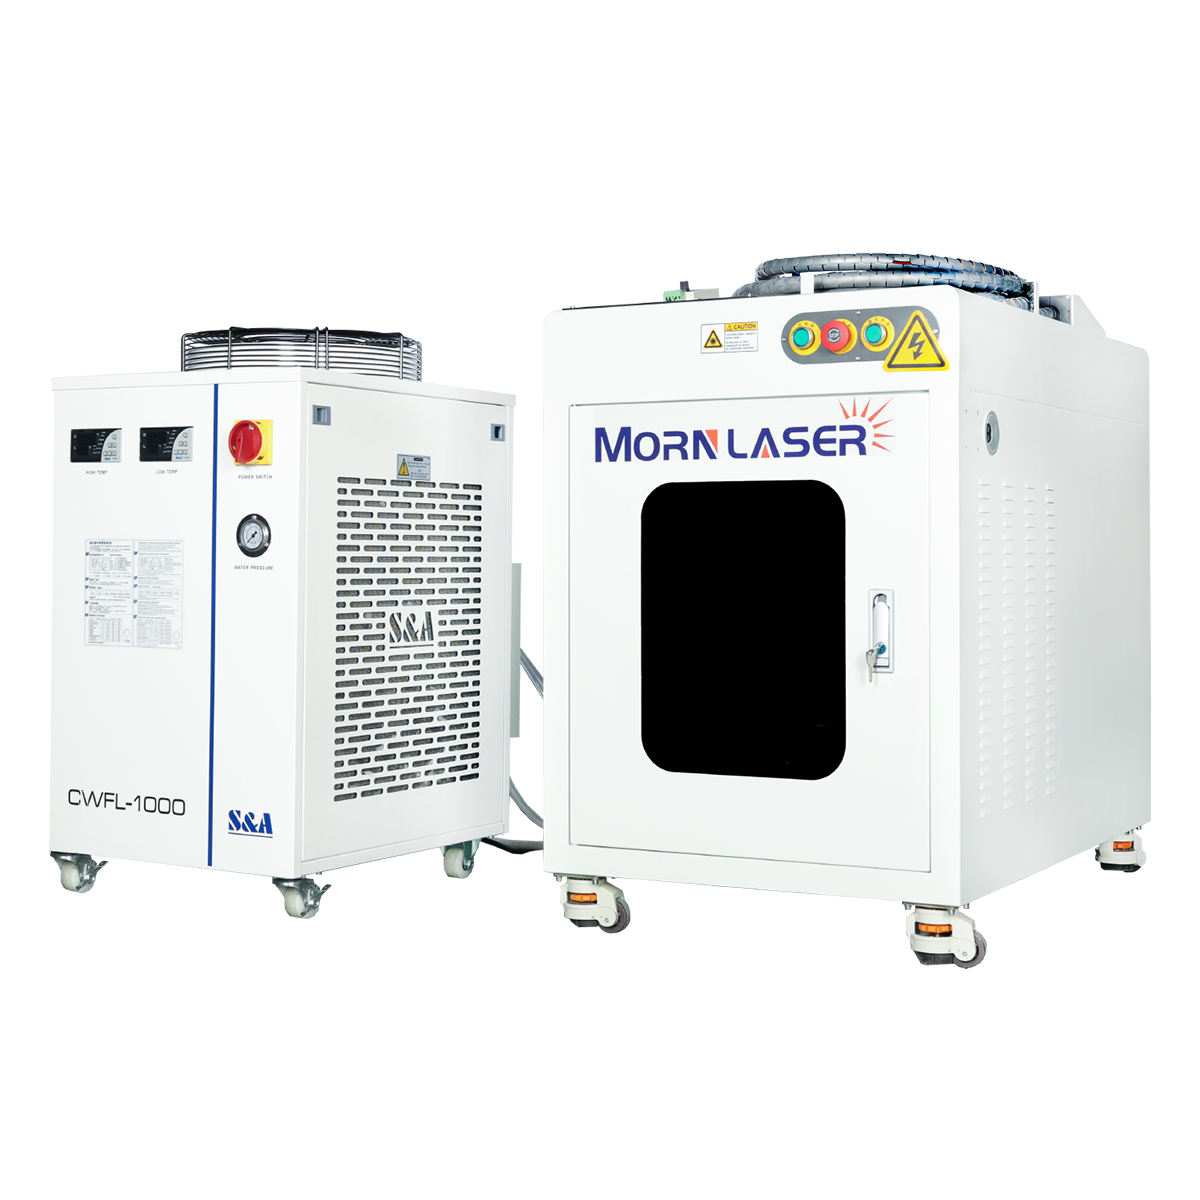 China Handheld Fiber Laser Lassen Machine 1000 W